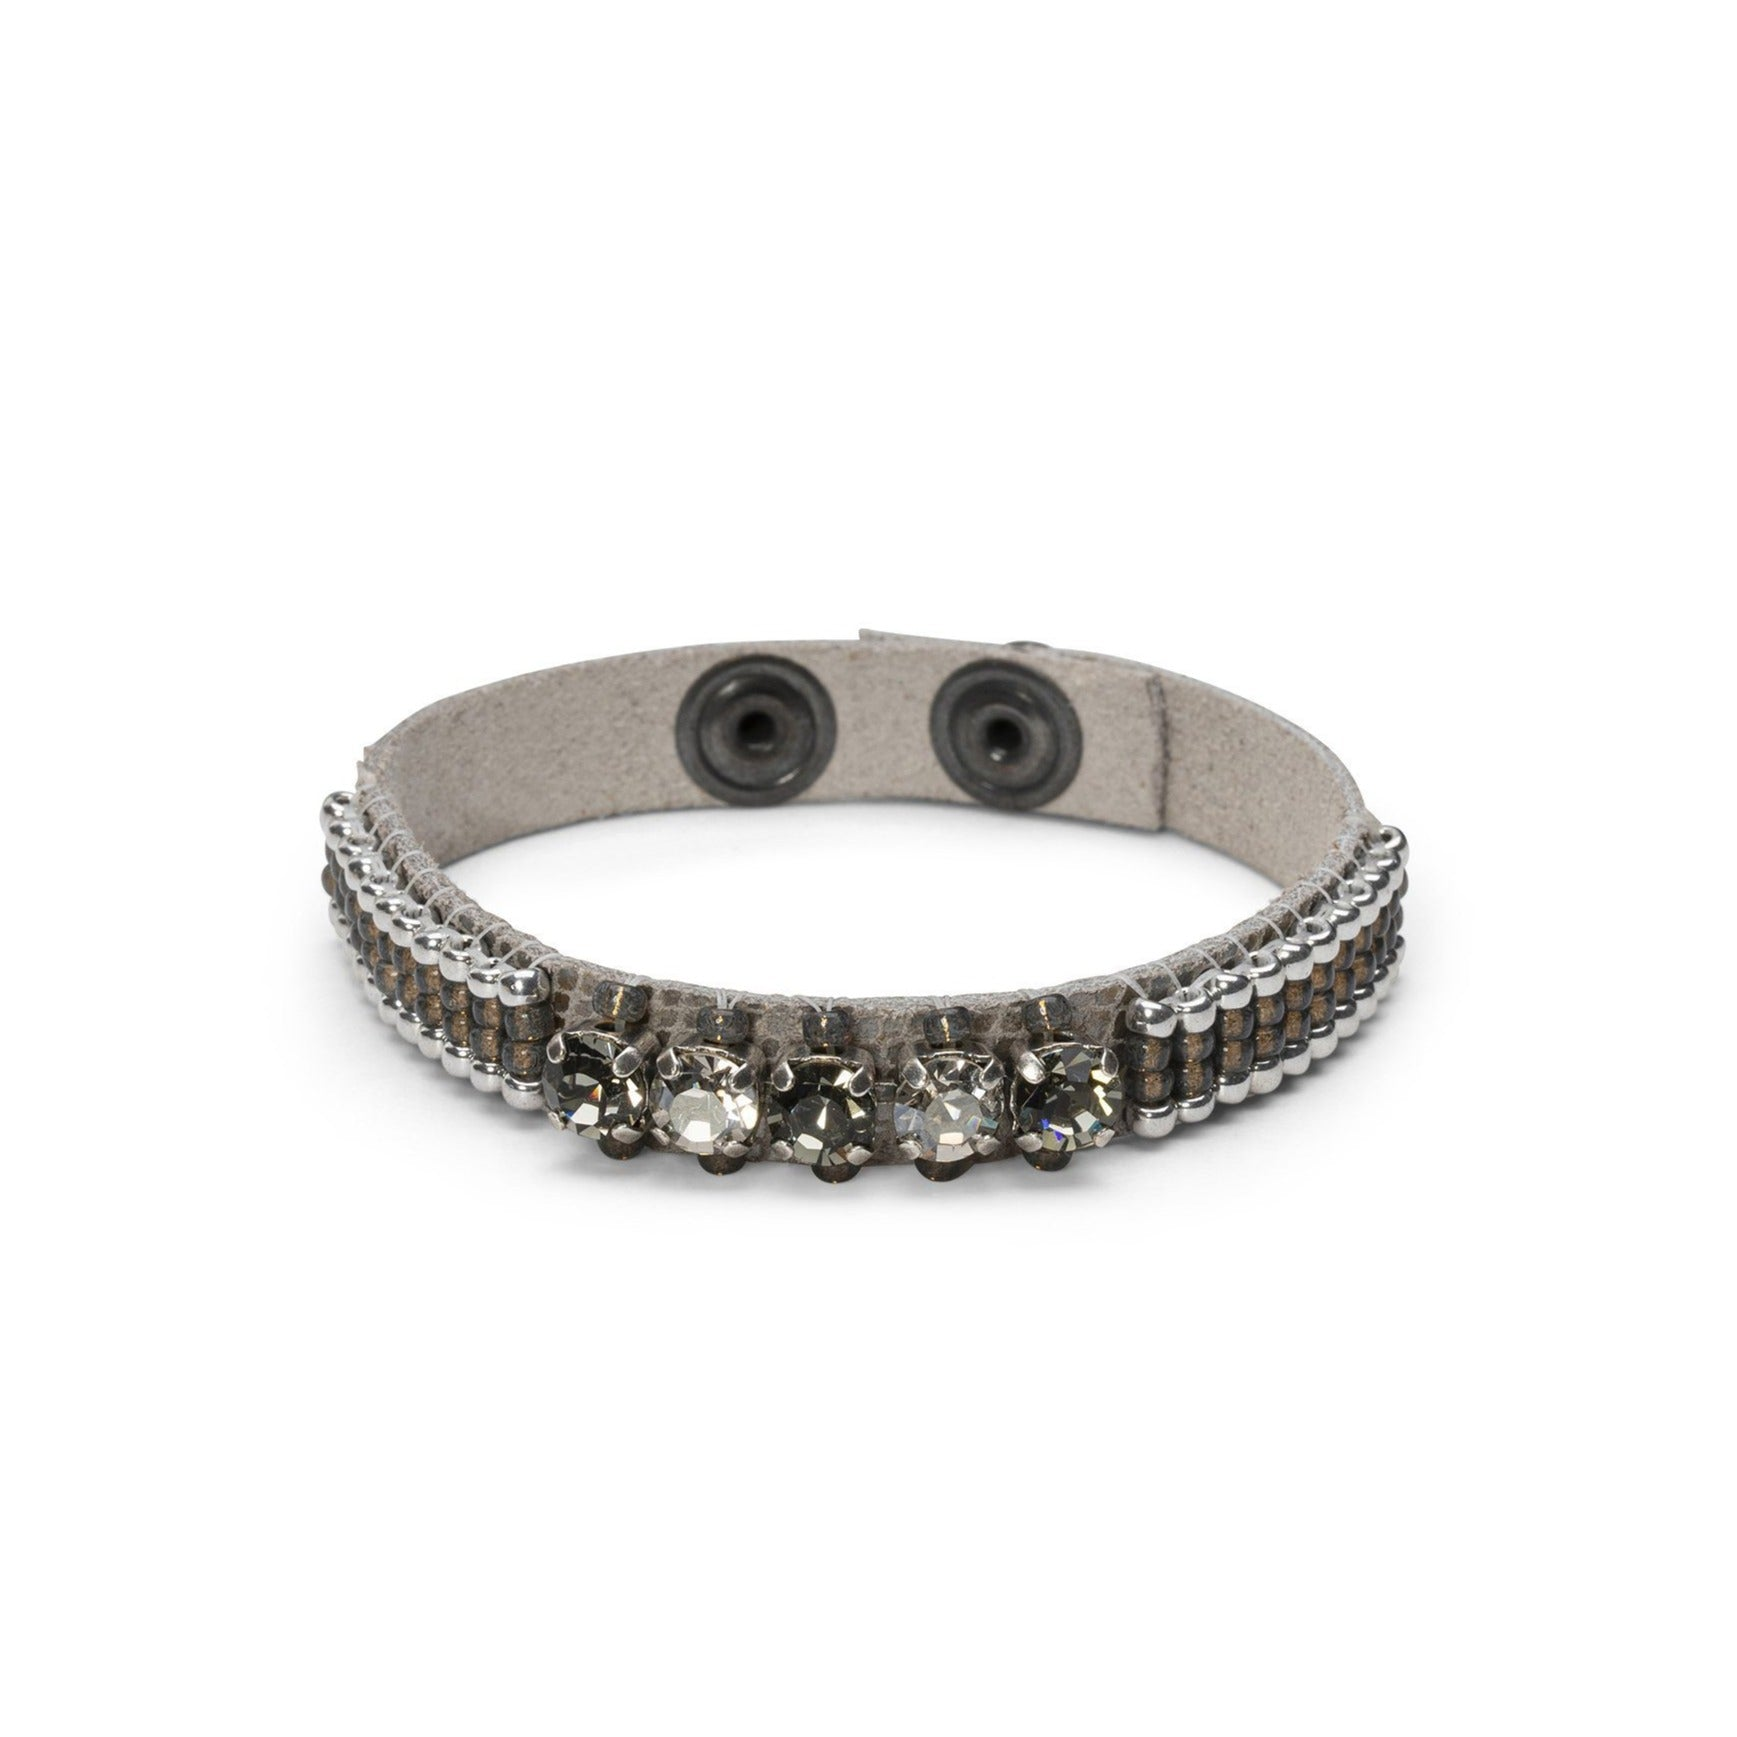 Milky way Bracelet - Gray